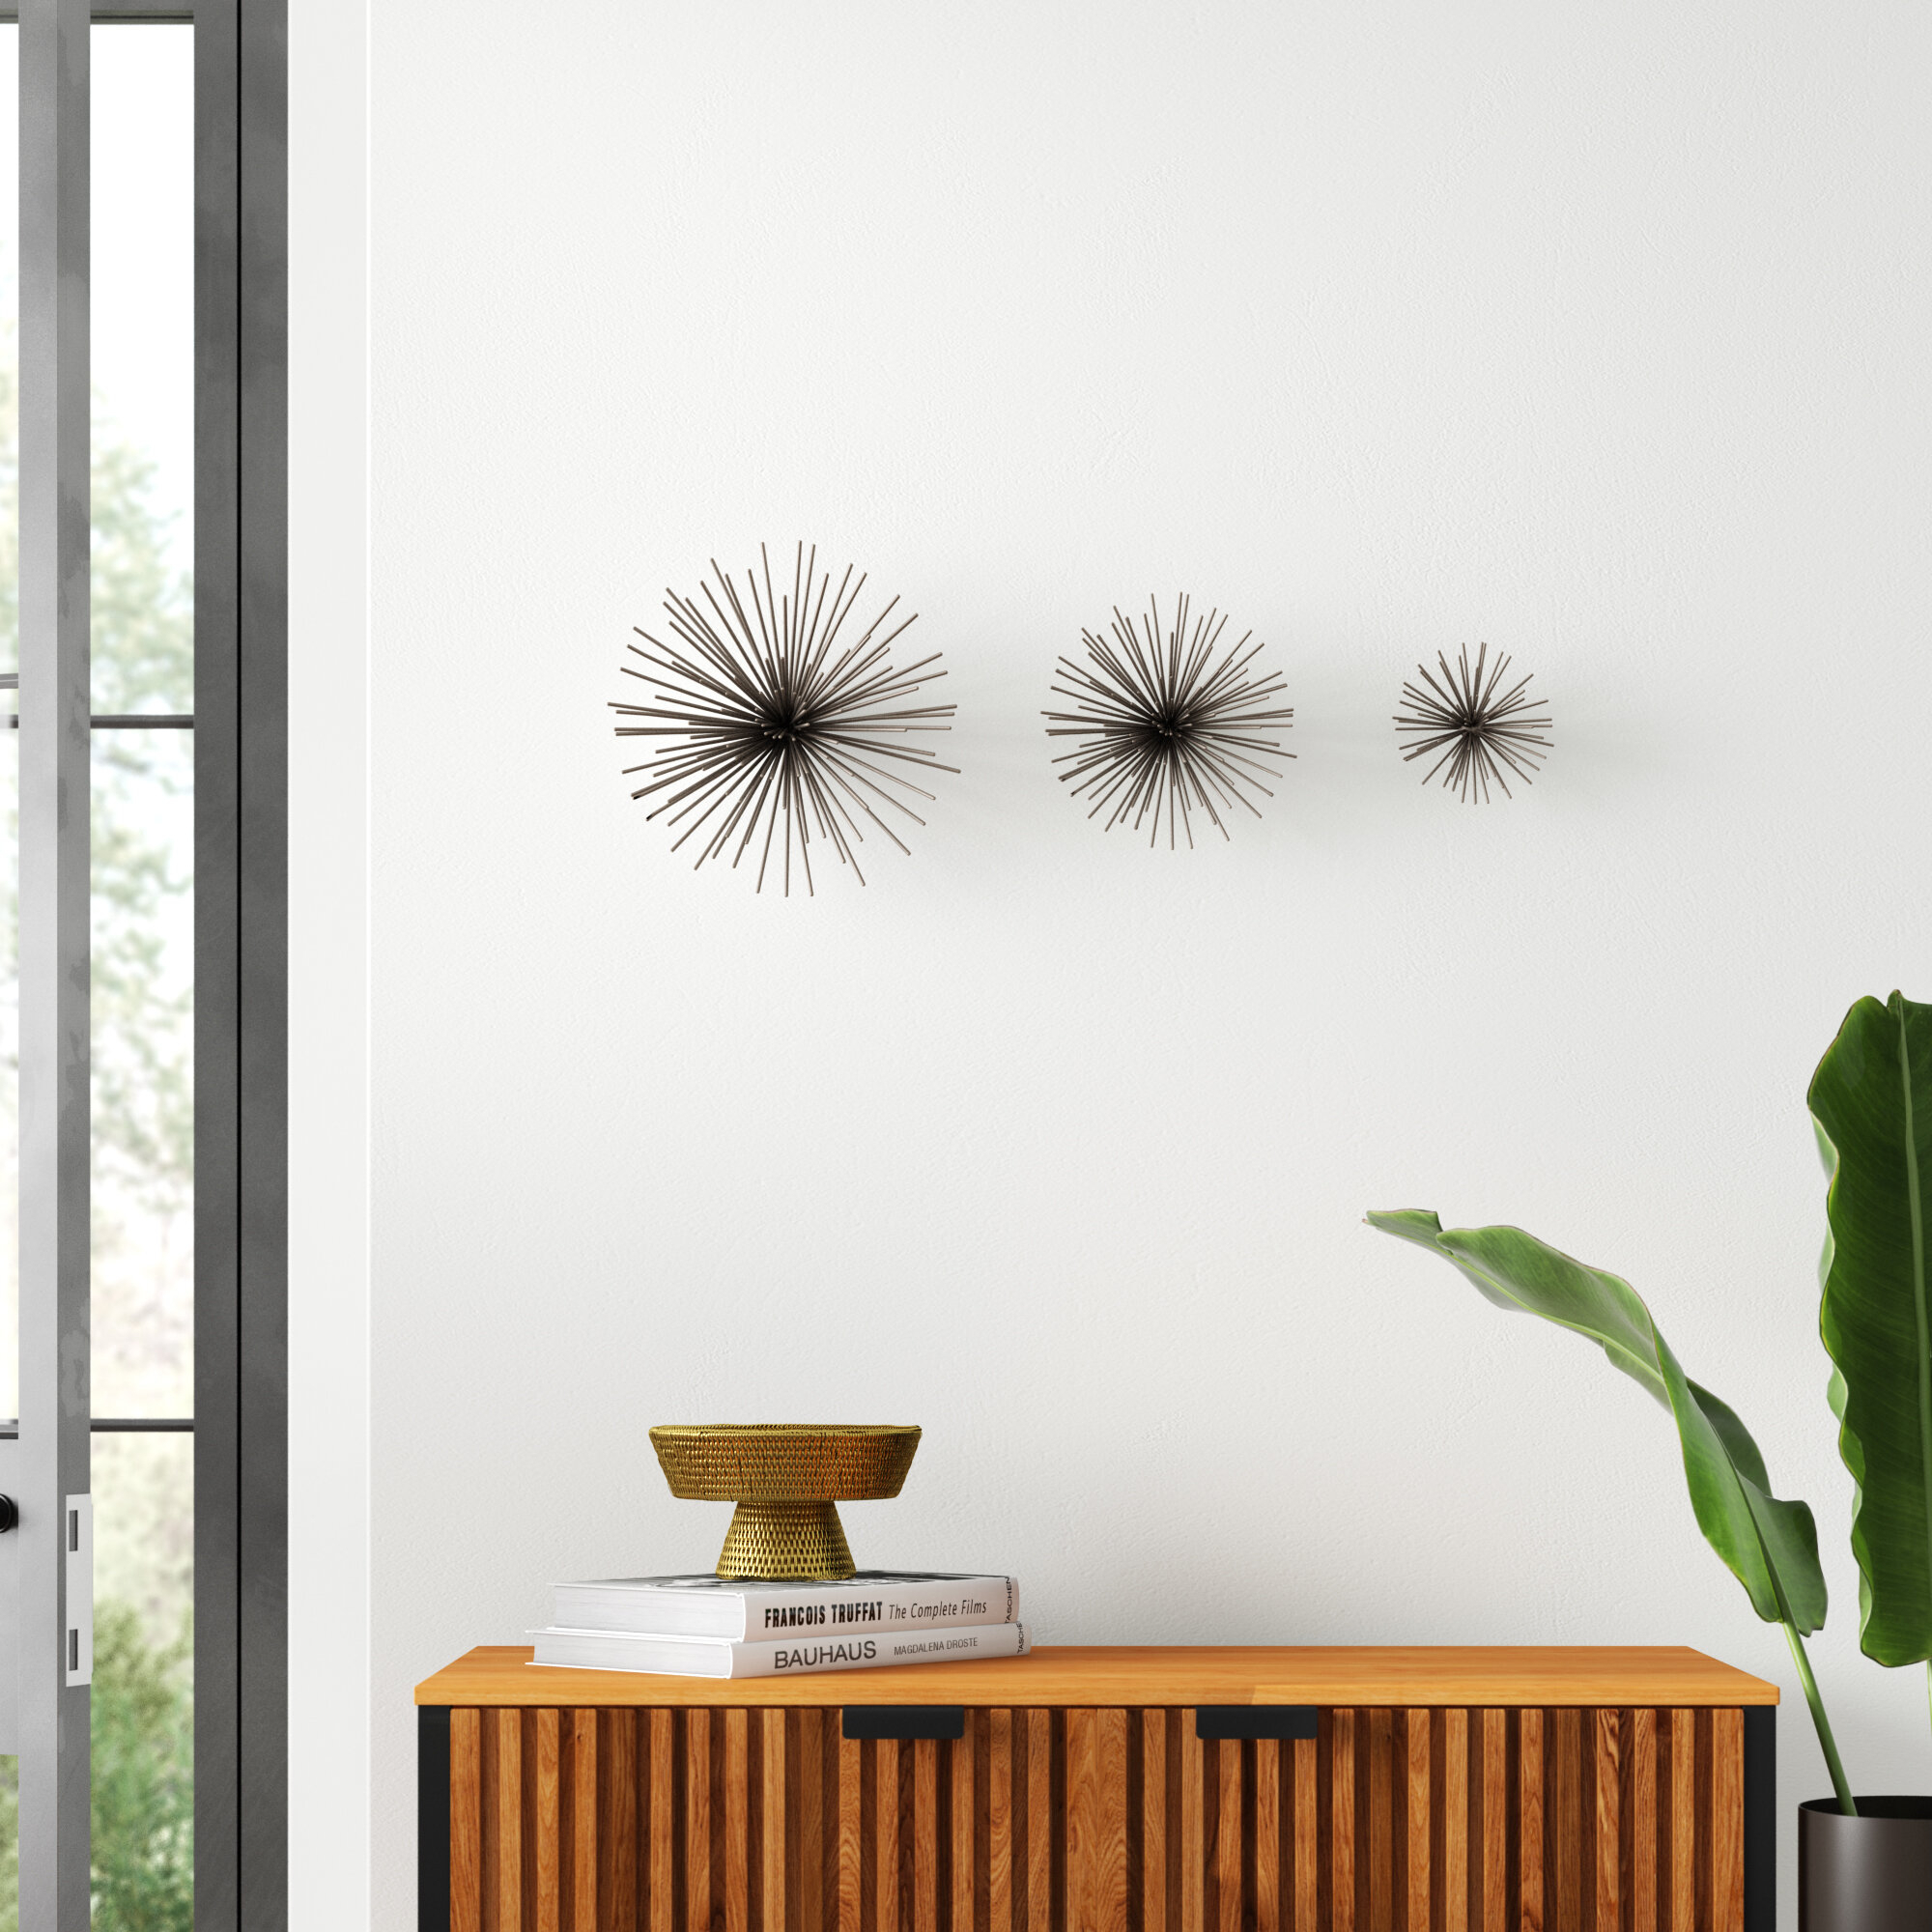 3 Piece Star Iron Wall Décor Set Pertaining To 3 Piece Star Wall Decor Sets (View 12 of 30)